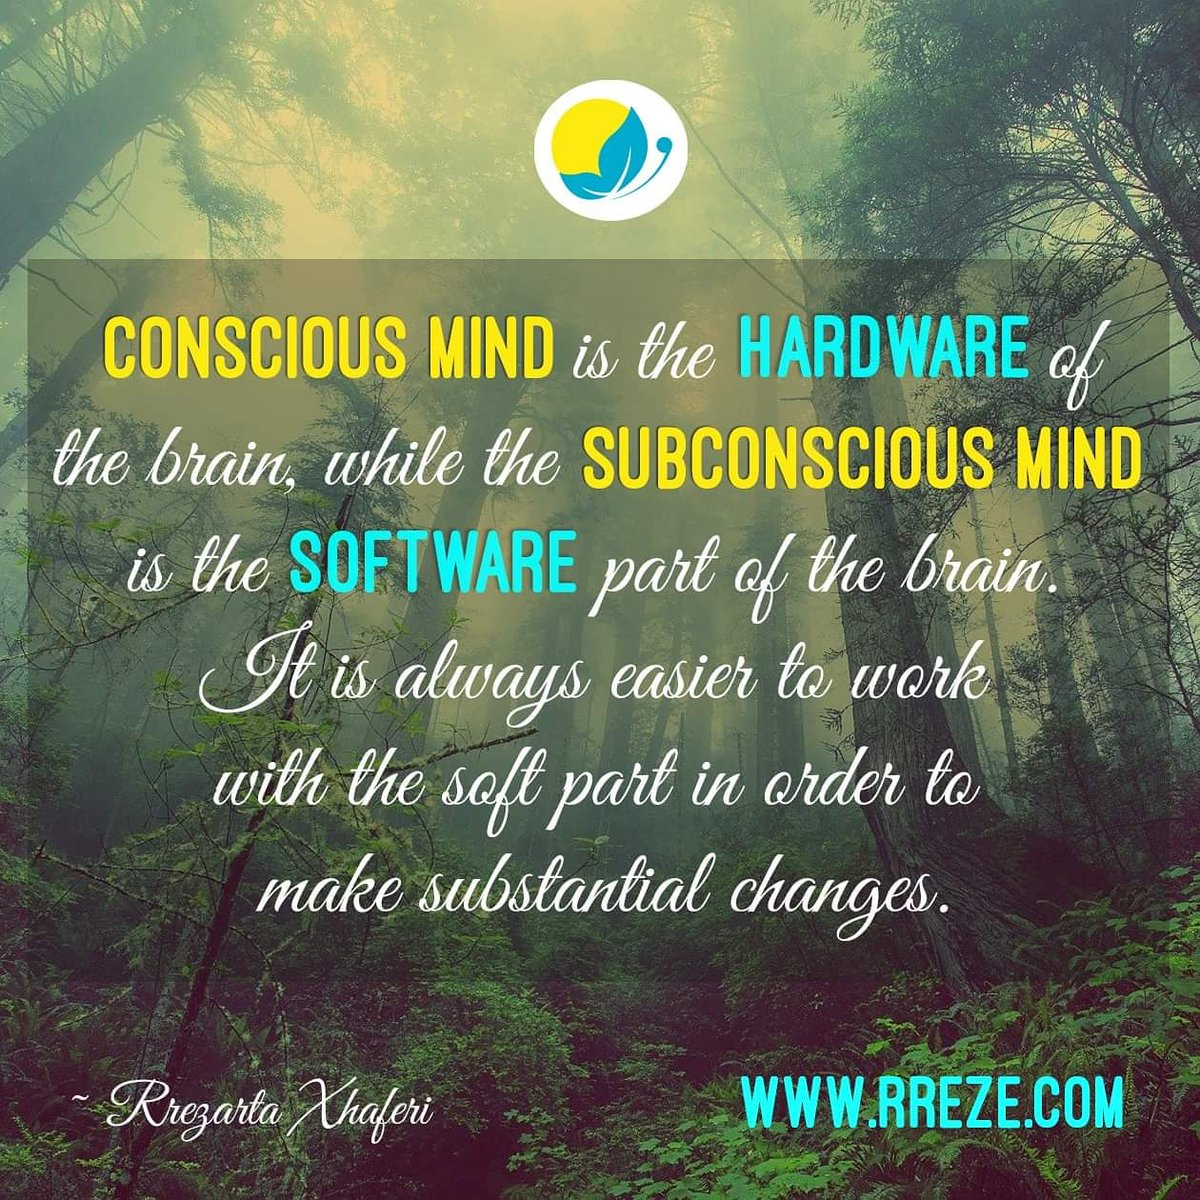 """Conscious mind is the hardware of the brain, while the subconscious mind is the software part of the brain. It is always easier to work with the soft part in order to make substantial changes."" ~ Rr. Xh.  @rreze_xh  #quote #inspiration #conscious #subconscious #mind #brain https://t.co/ciEiE5YO3Z"